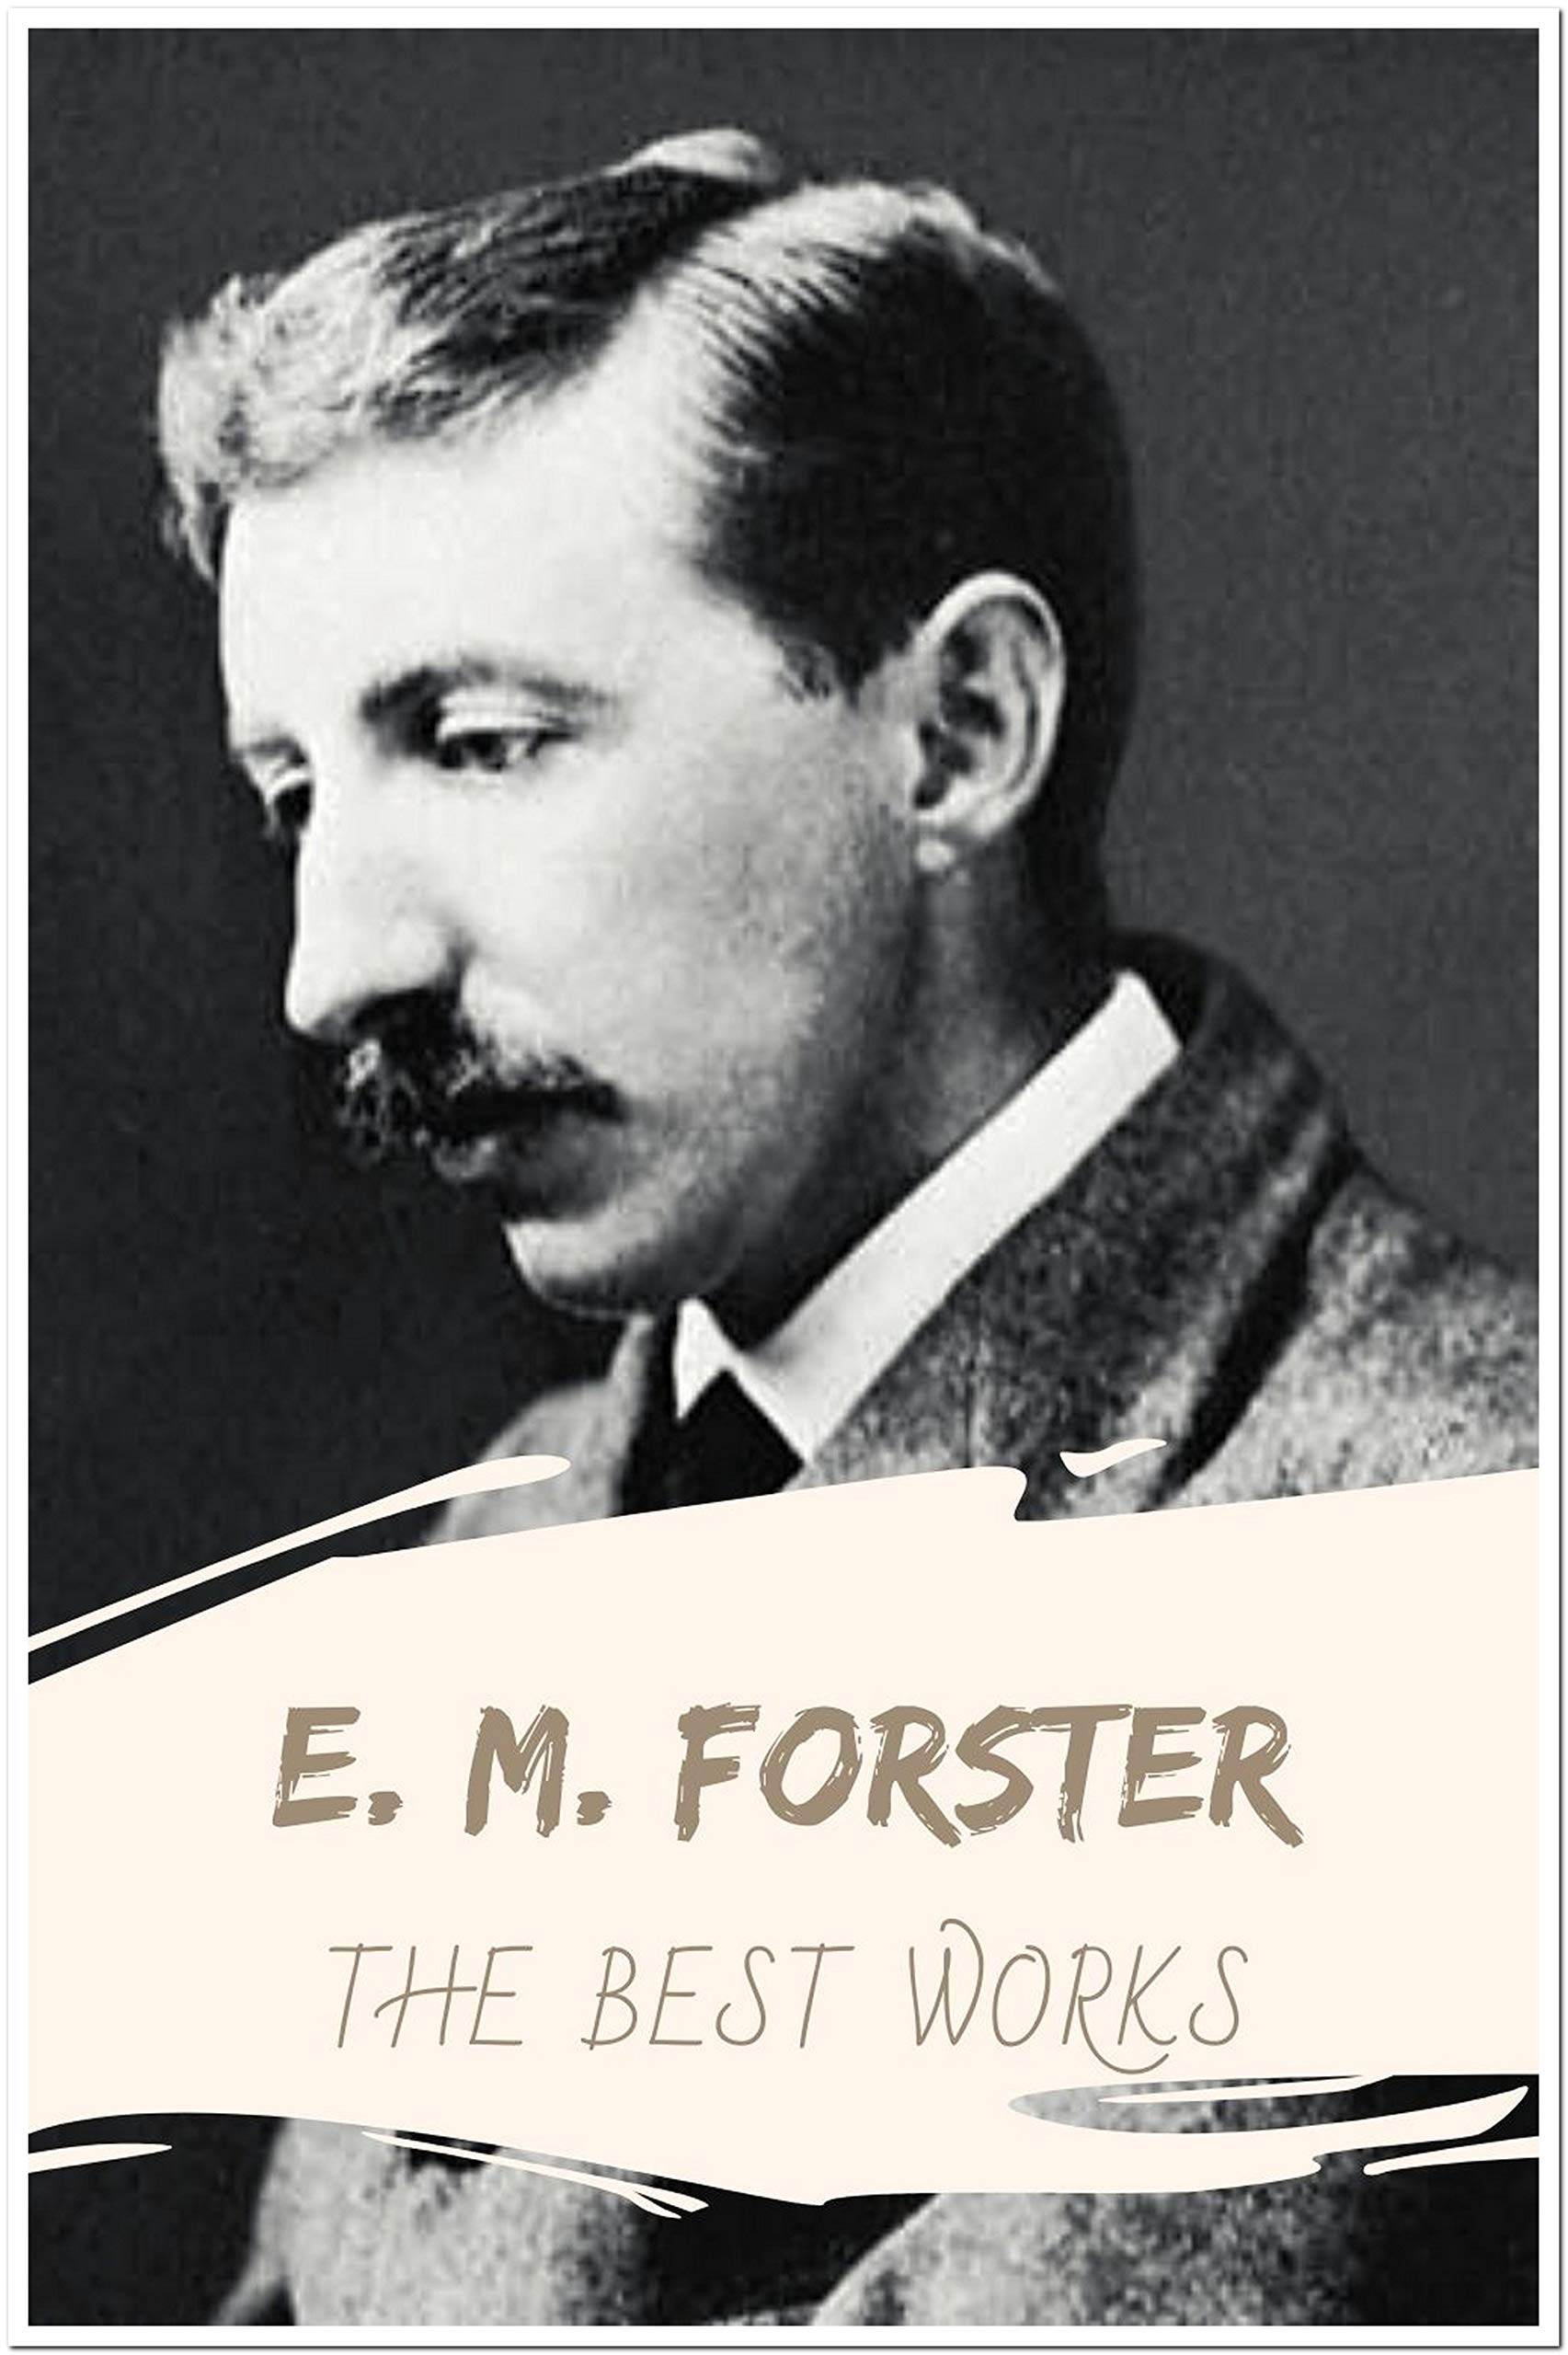 E. M. Forster: The Best Works (Annotated): Collection Including Include A Room With A View, Howards End, The Celestial Omnibus, The Longest Journey, The Machine Stops, and More